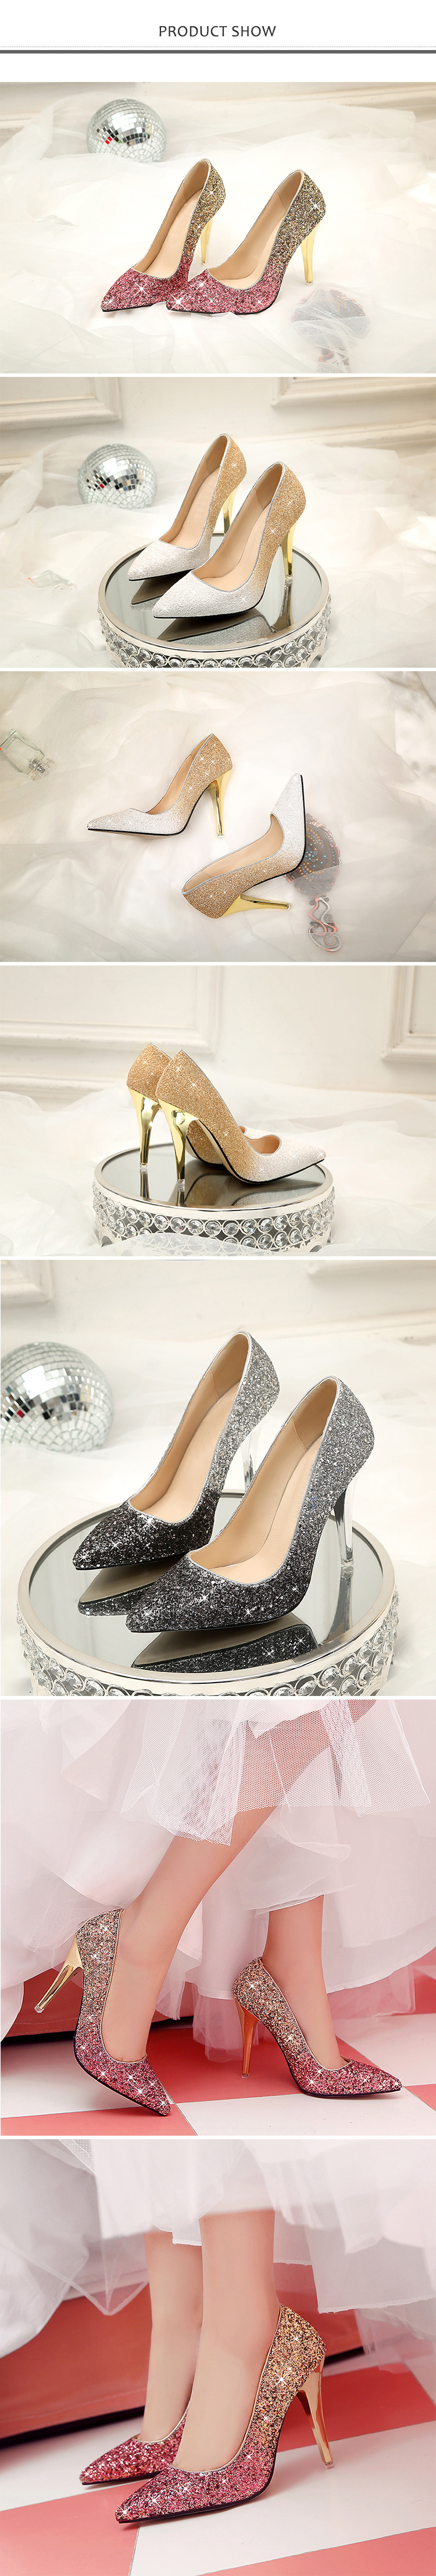 18 New High thin heels shoes women pumps bling wedding Bridal shoes classic 1cm 5.5cm or 8.5cm pointed toe evening party shoes 6